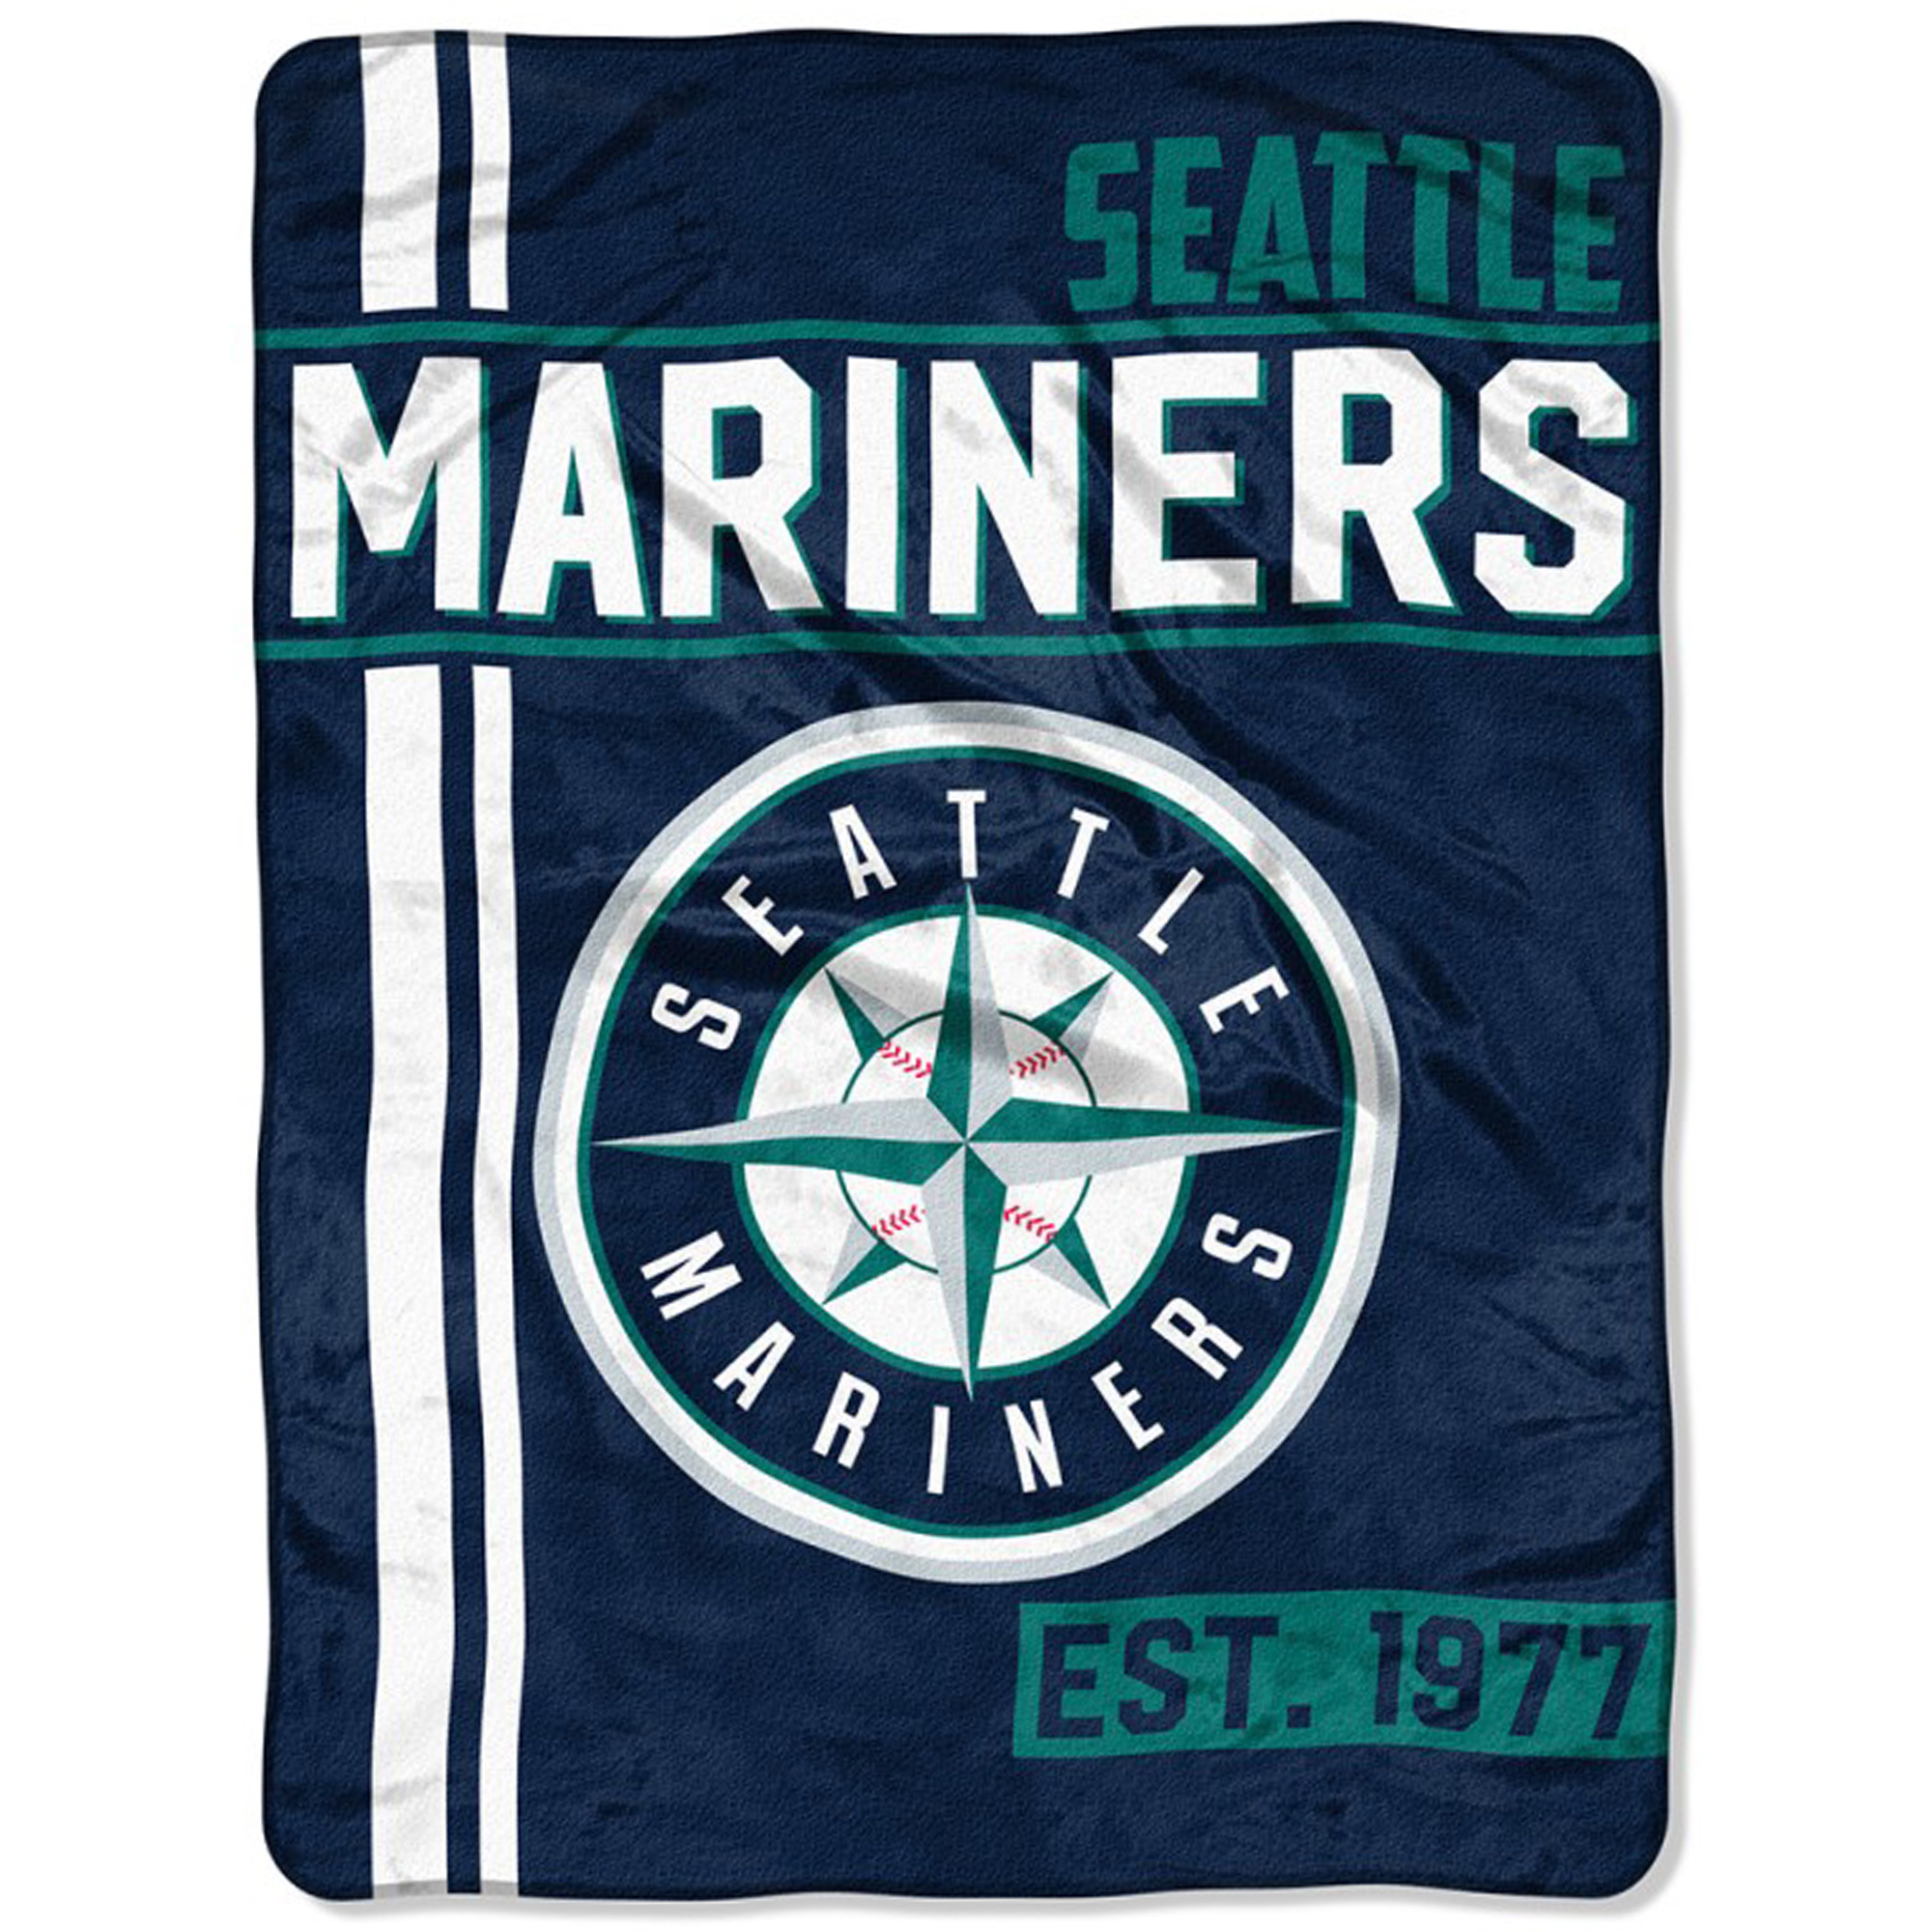 "Seattle Mariners The Northwest Company 46"" x 60"" Walk Off Micro Raschel Throw Blanket - No Size"